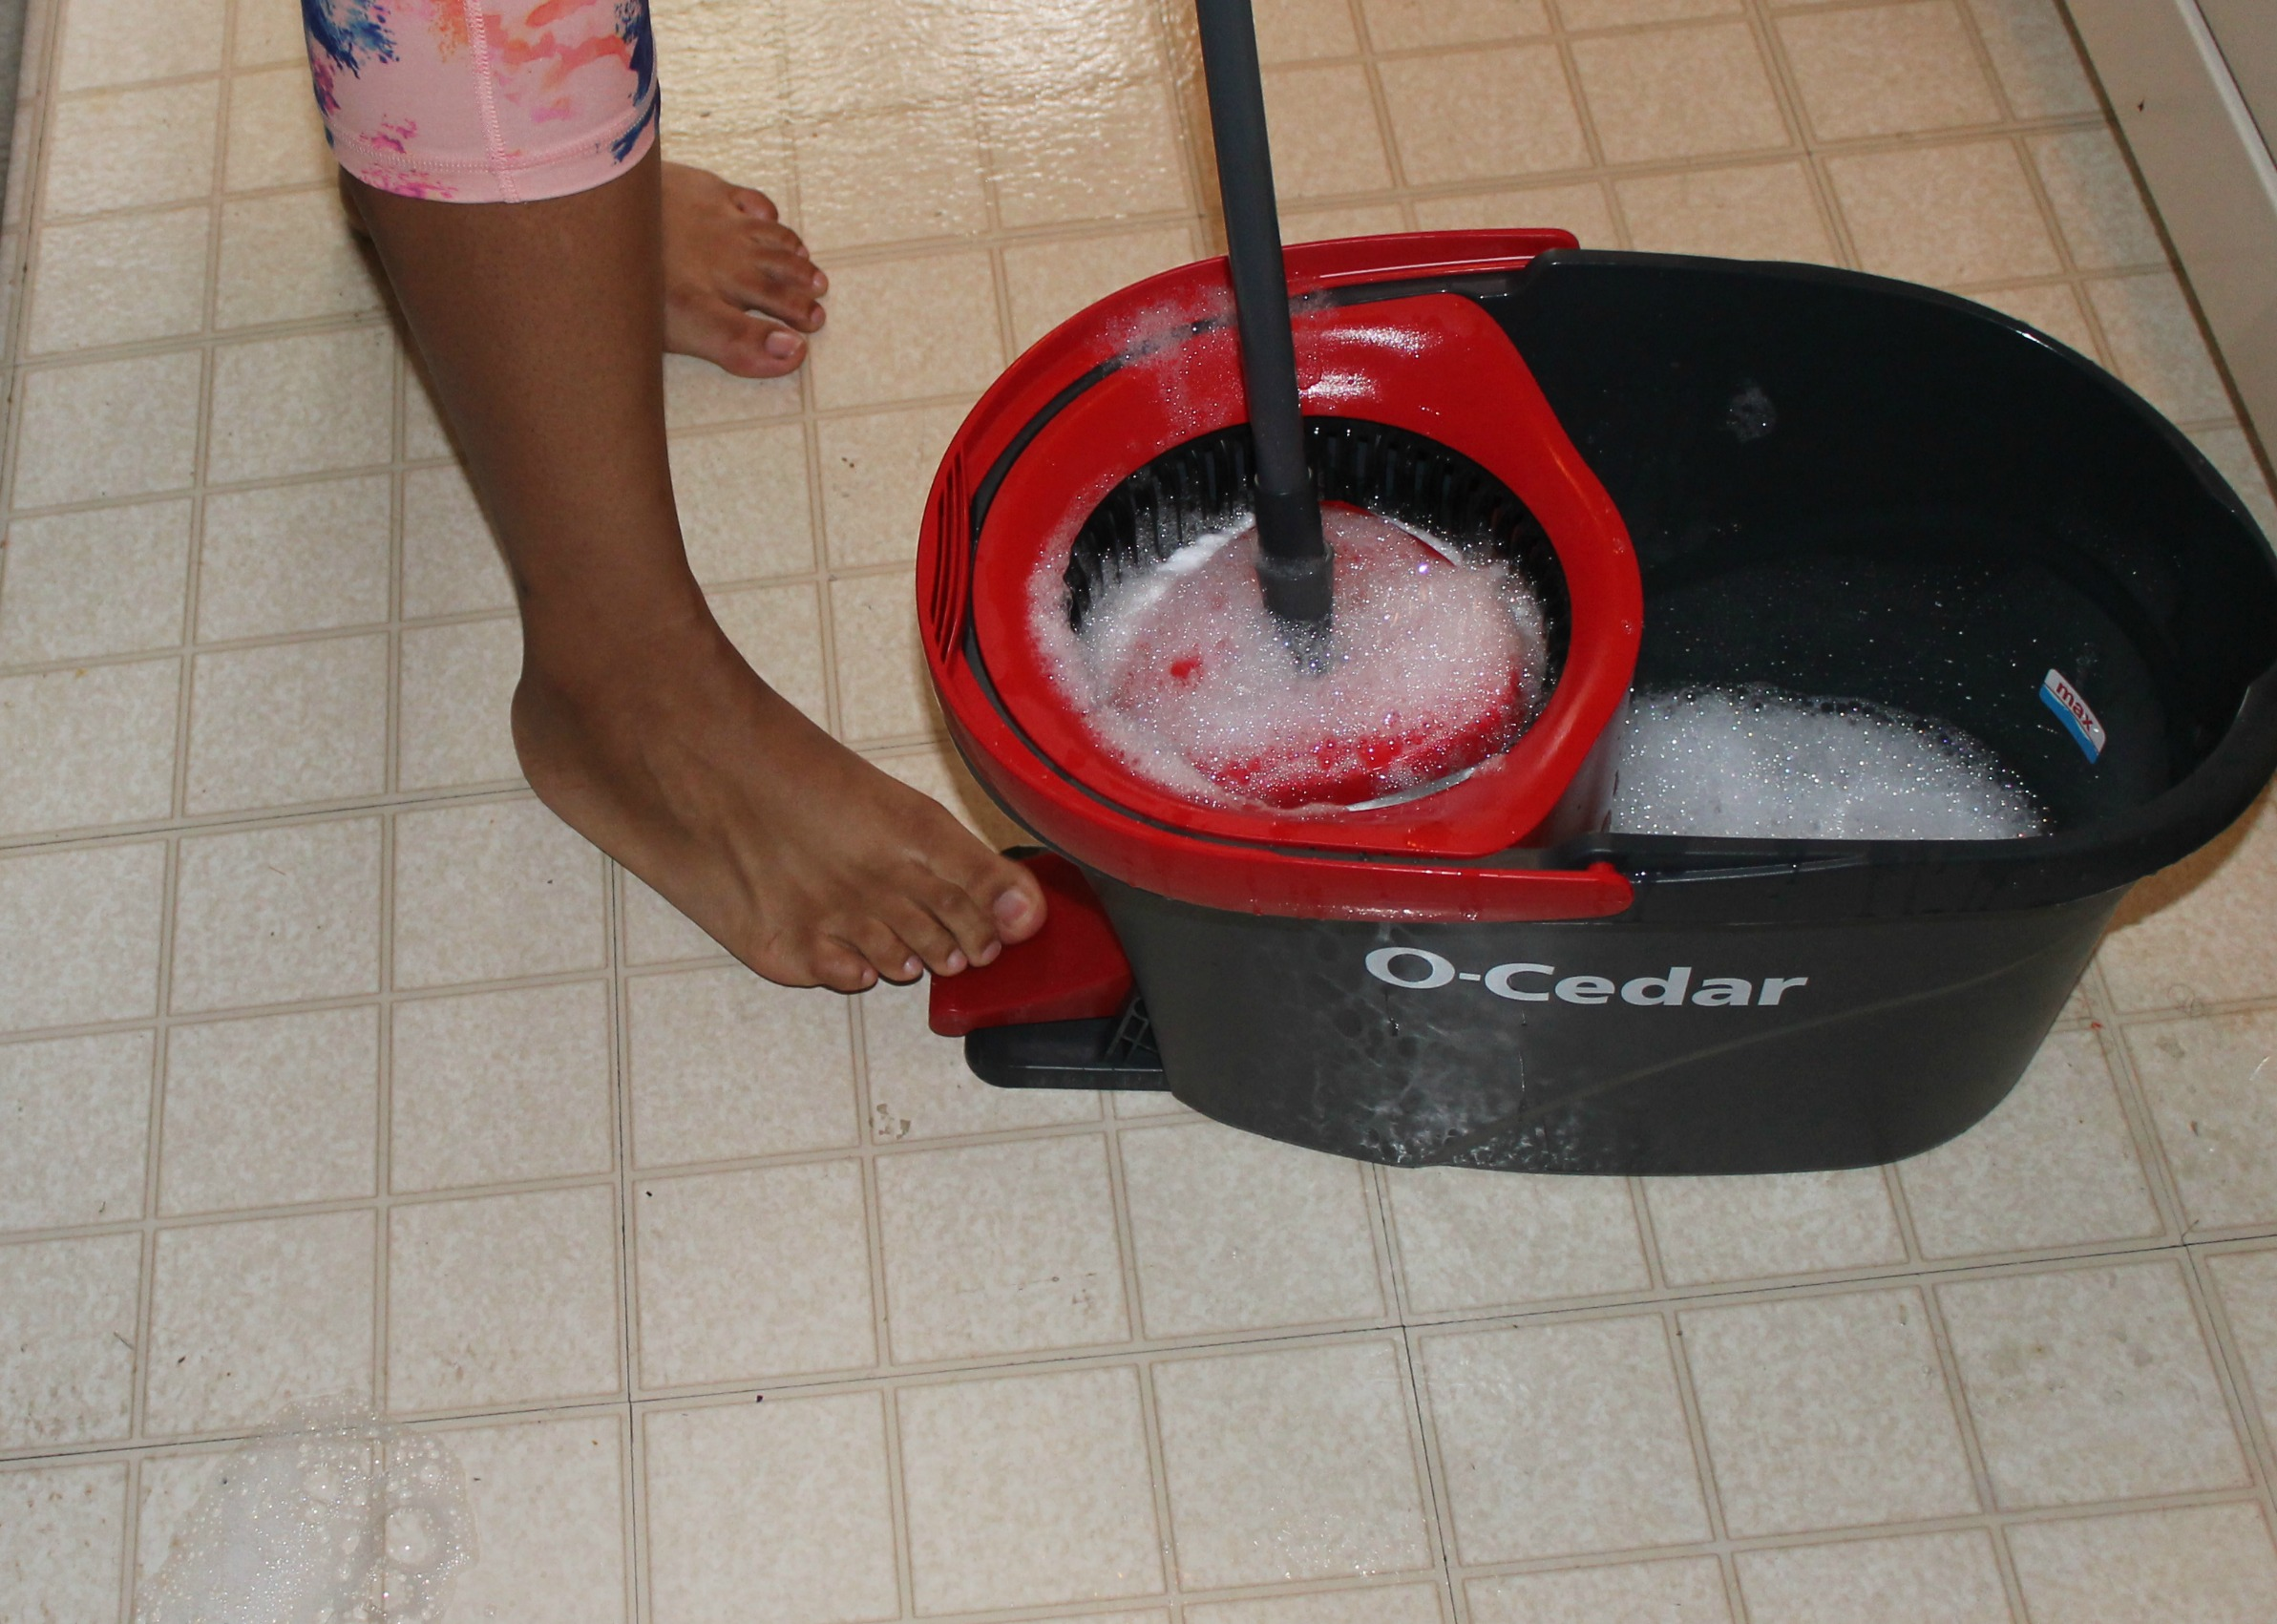 O Cedar Easywring Spin Mop Amp Bucket System Makes My Life